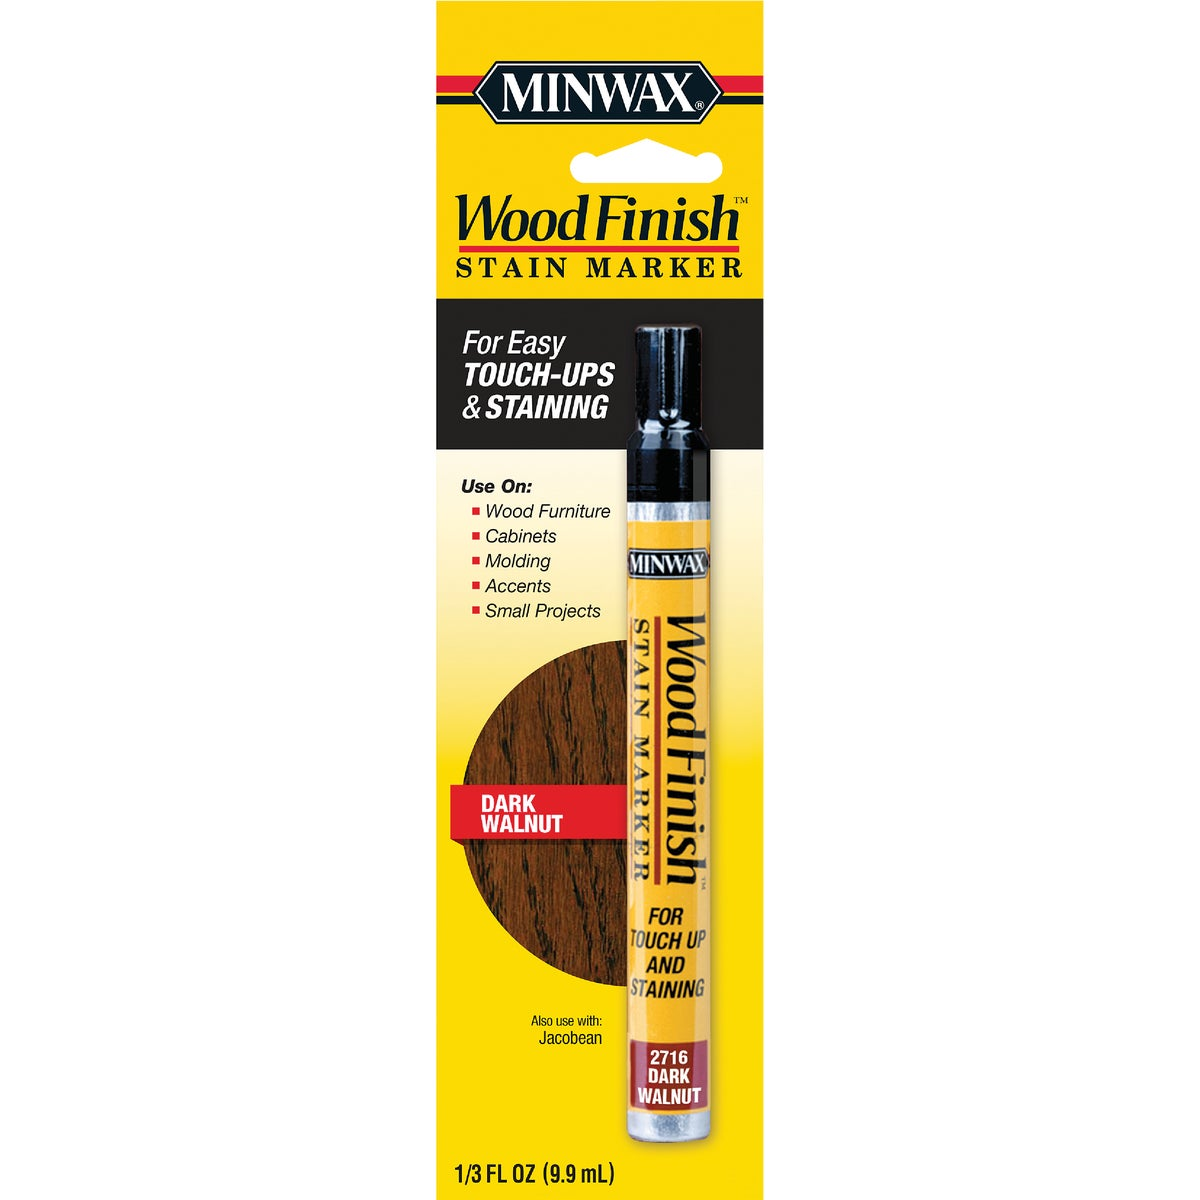 DARK WALNUT STAIN MARKER - 63487 by Minwax Company